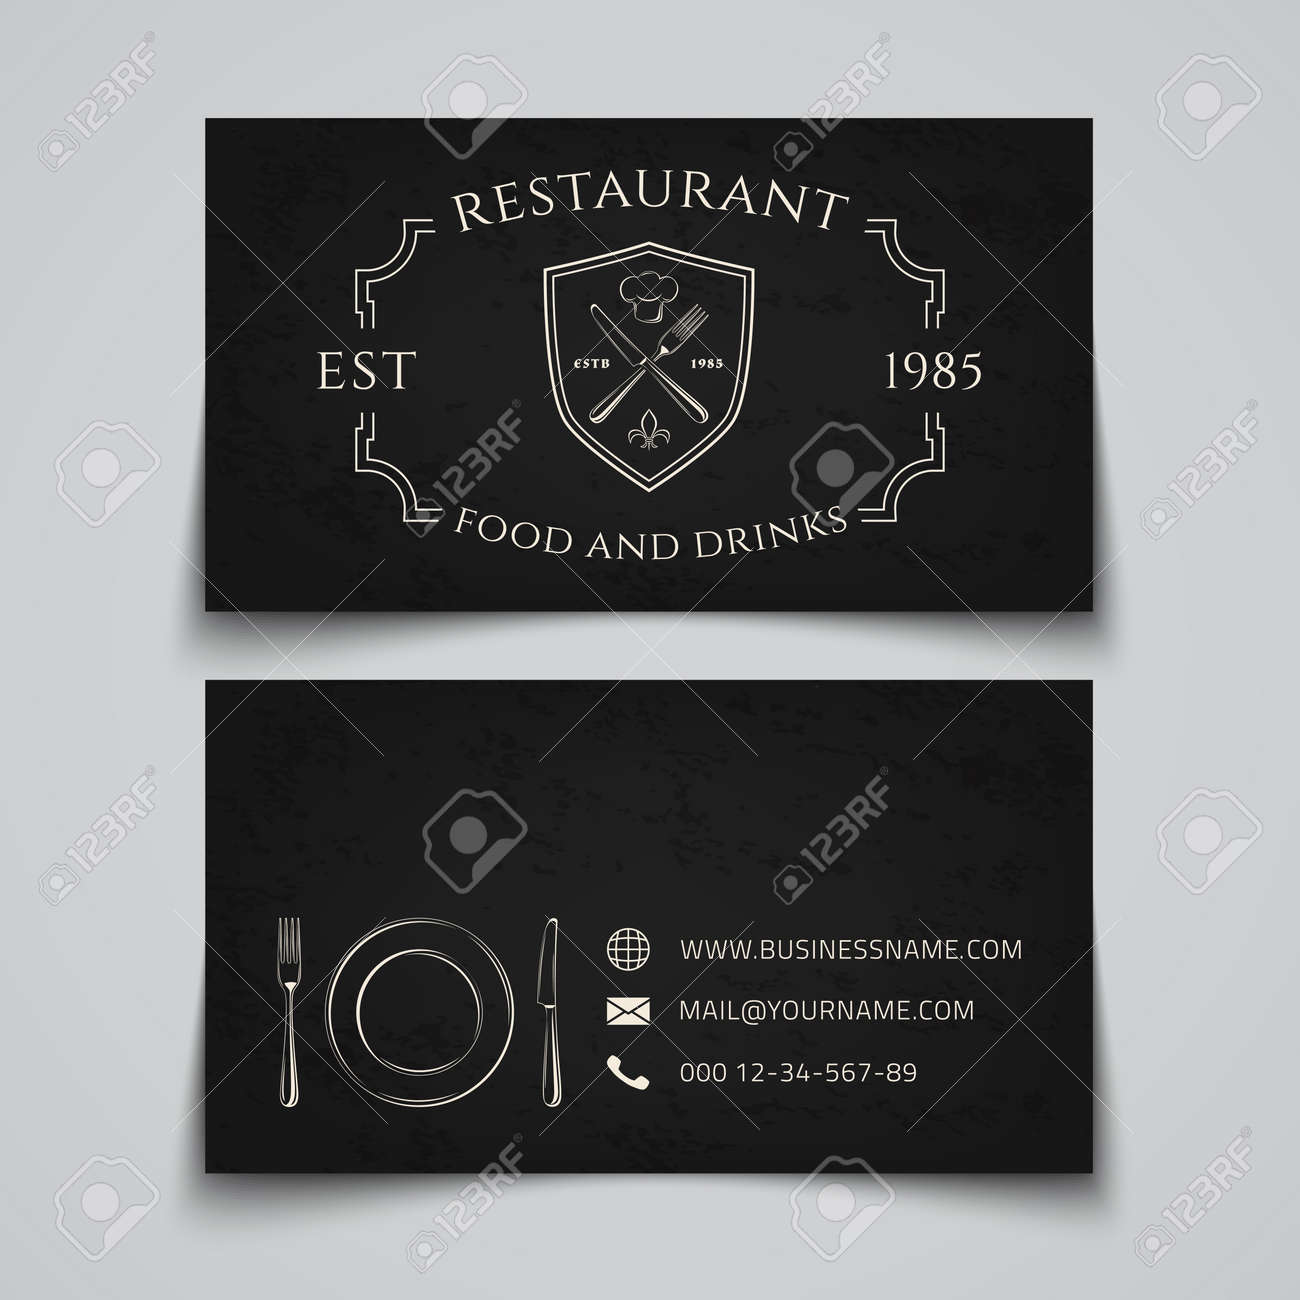 Business Card Template With Logo For Restaurant, Cafe, Bar Or ...